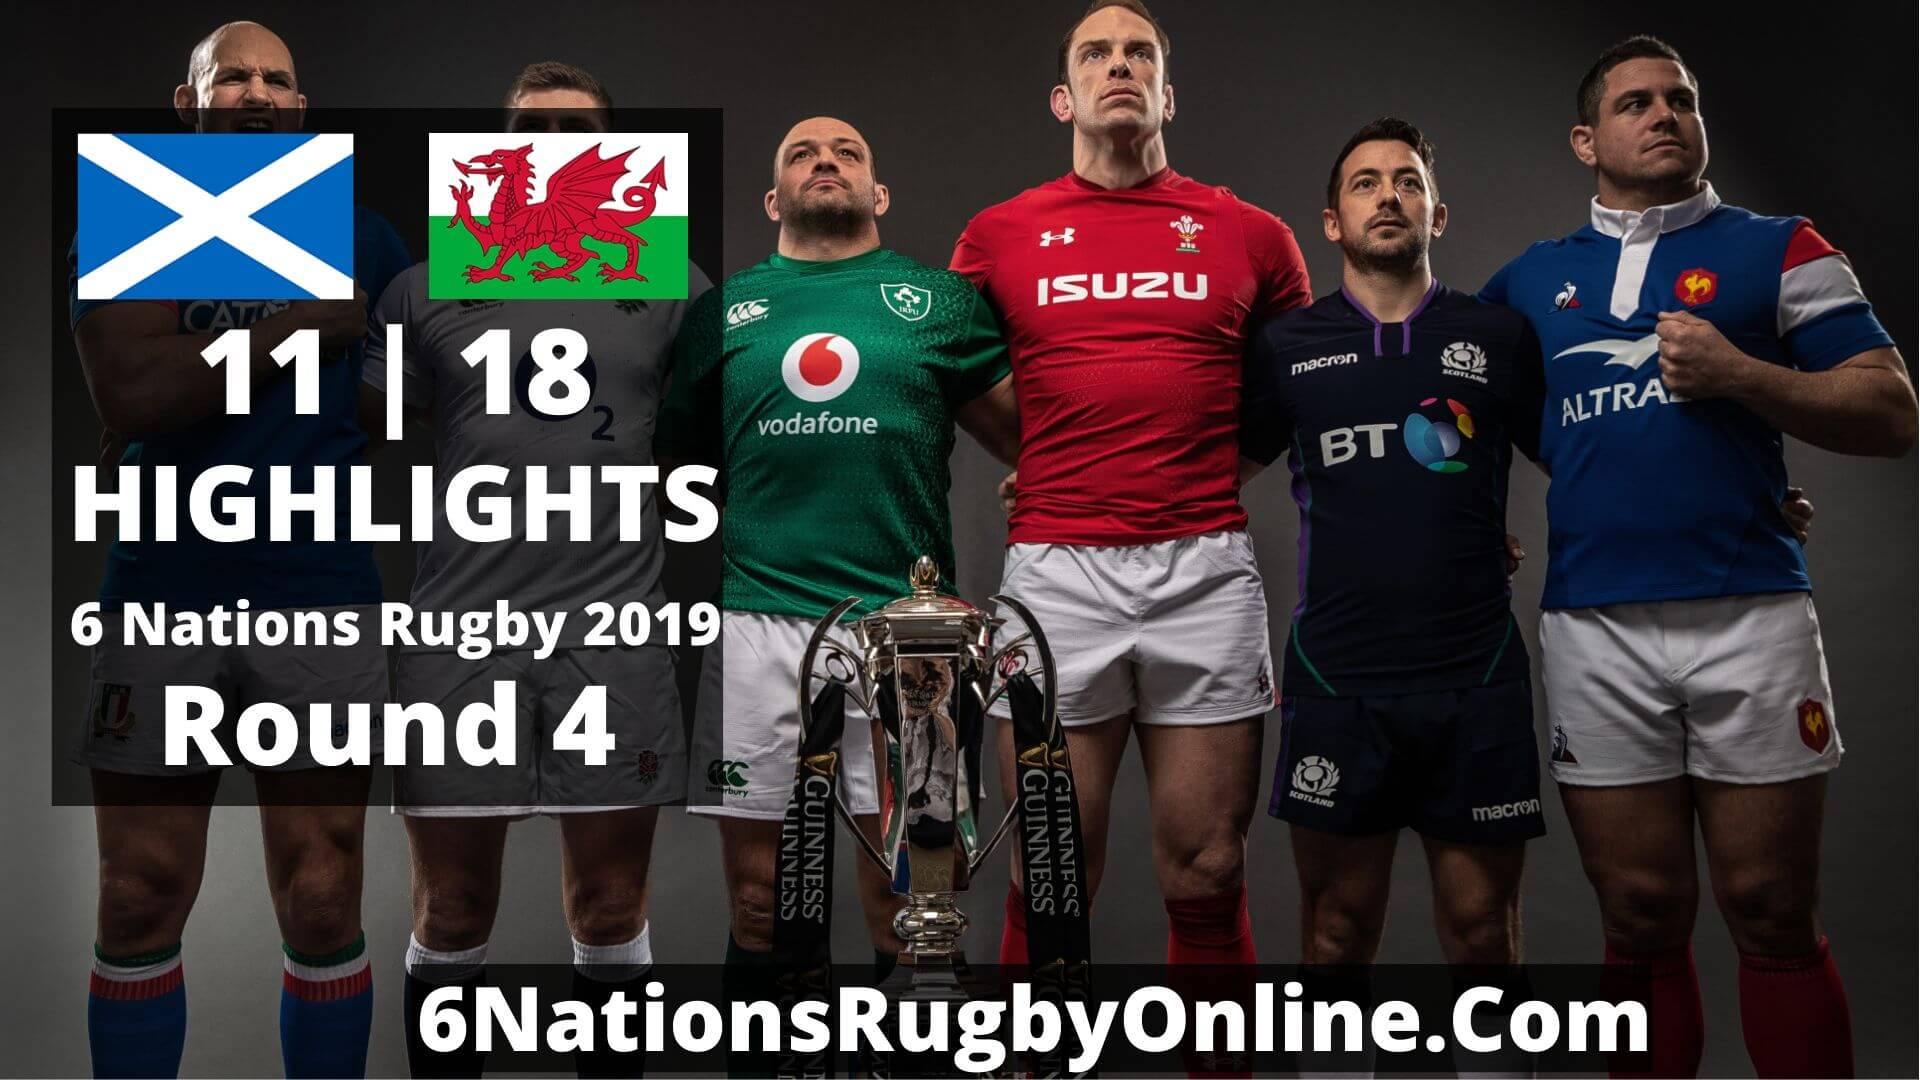 Scotland Vs Wales Highlights 2019 Six Nations Rugby Round 4